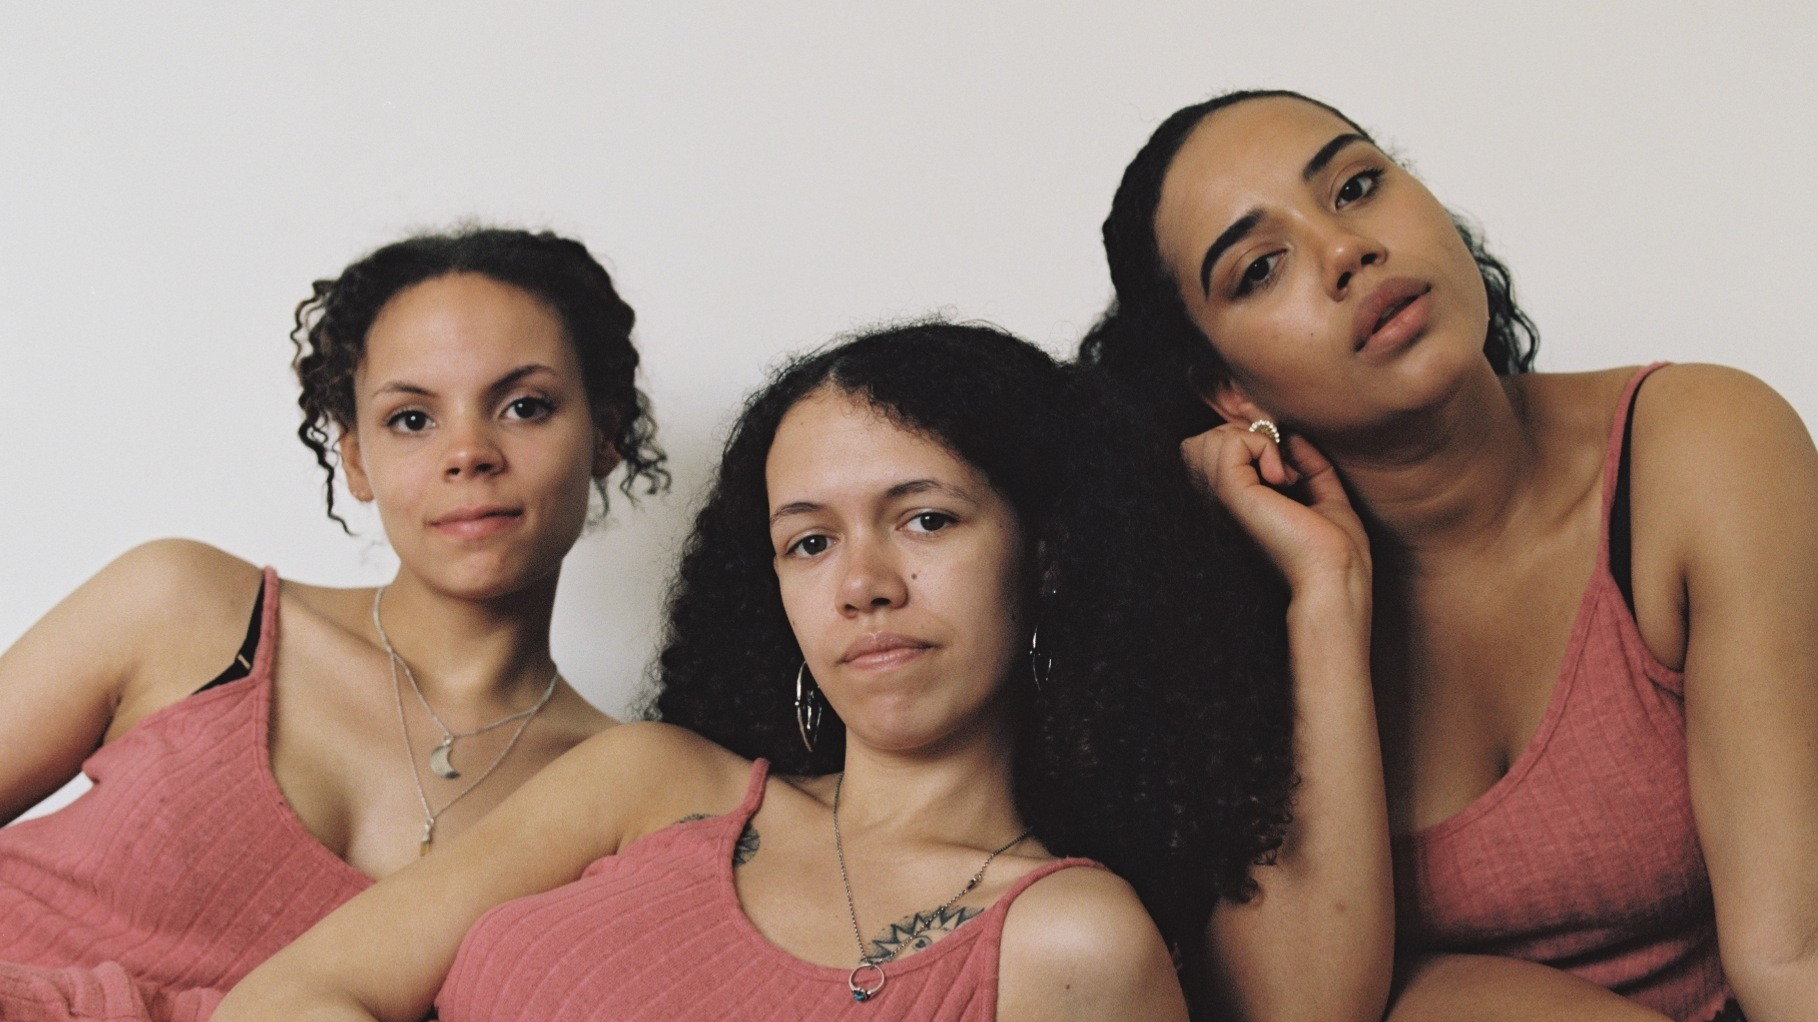 the new typical girls zine features generations of radical creative women